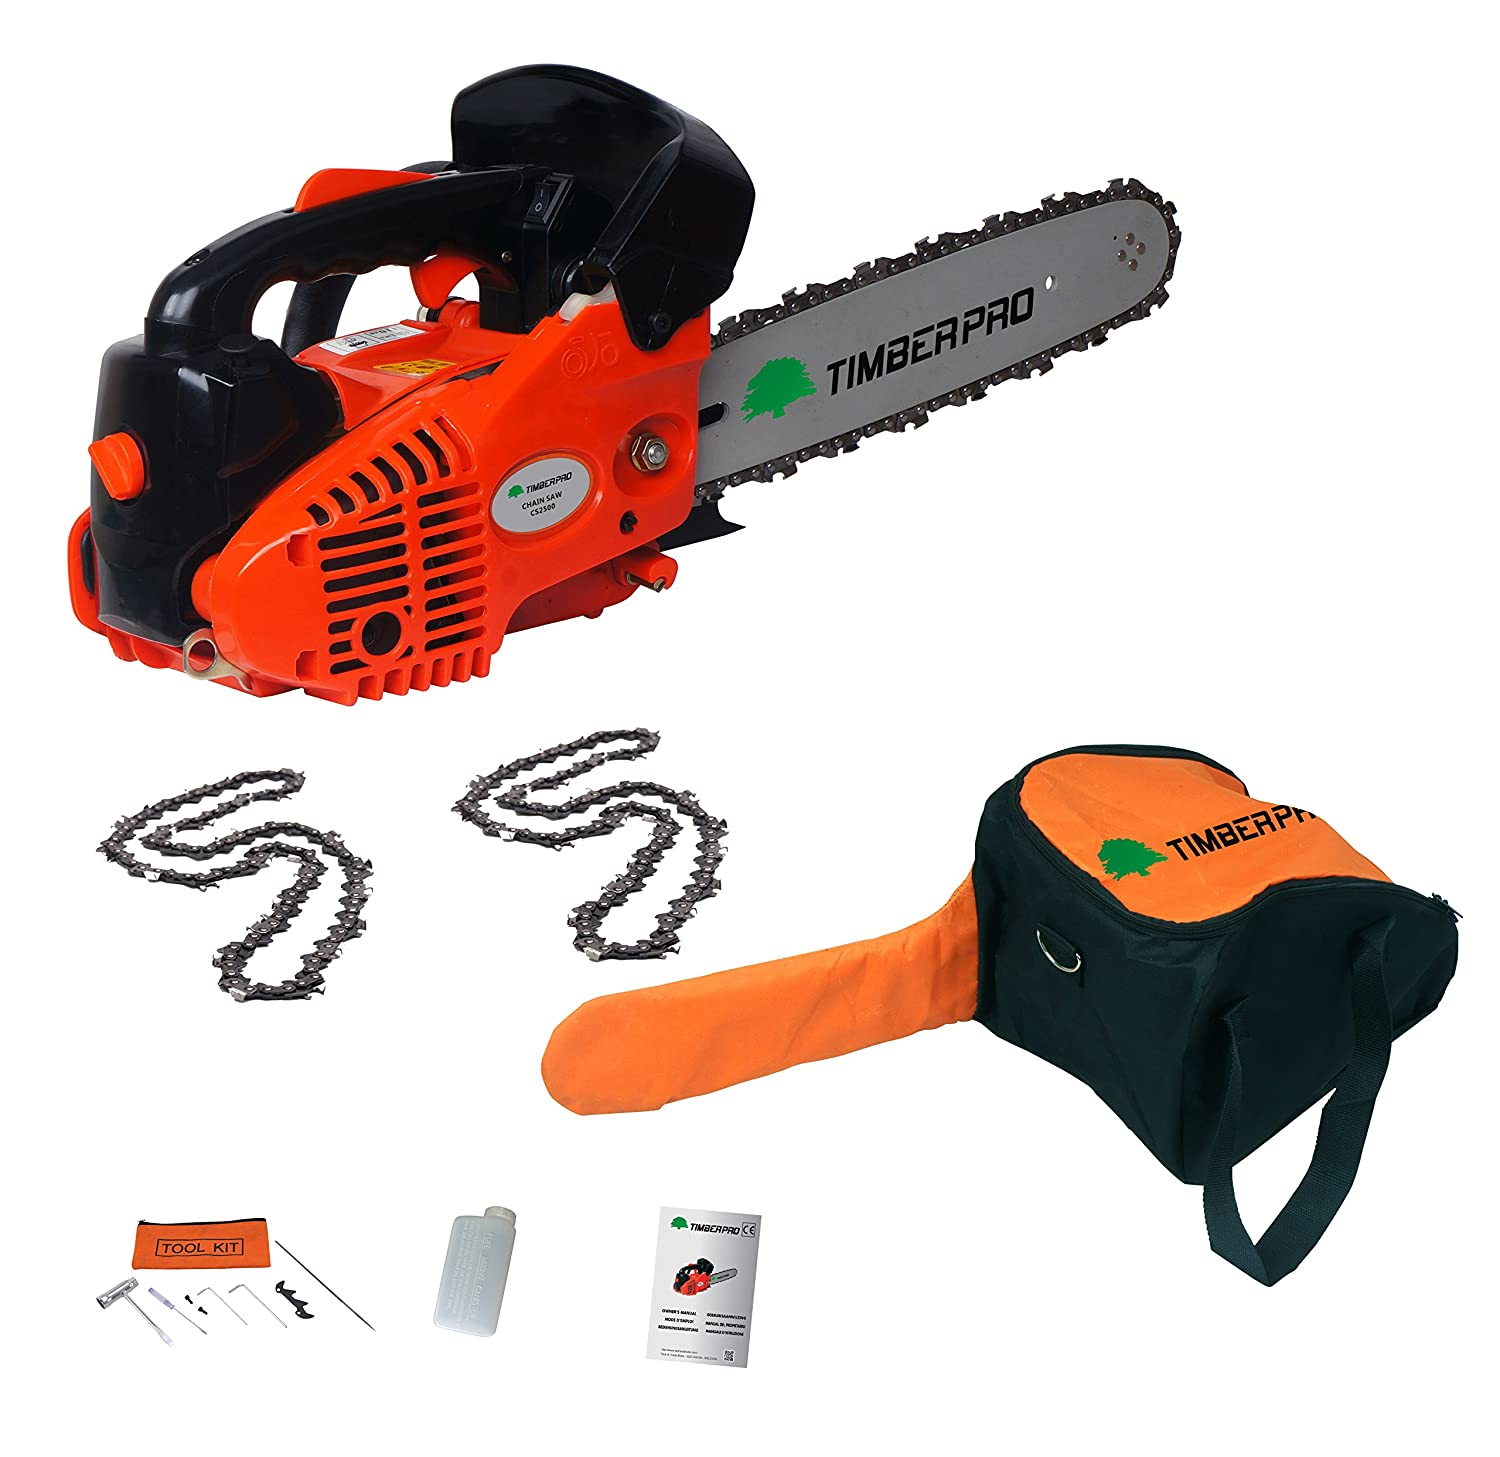 "26CC TIMBERPRO Lightweight TOP Handled Petrol Chainsaw 10"" Bar + 2 Chains"